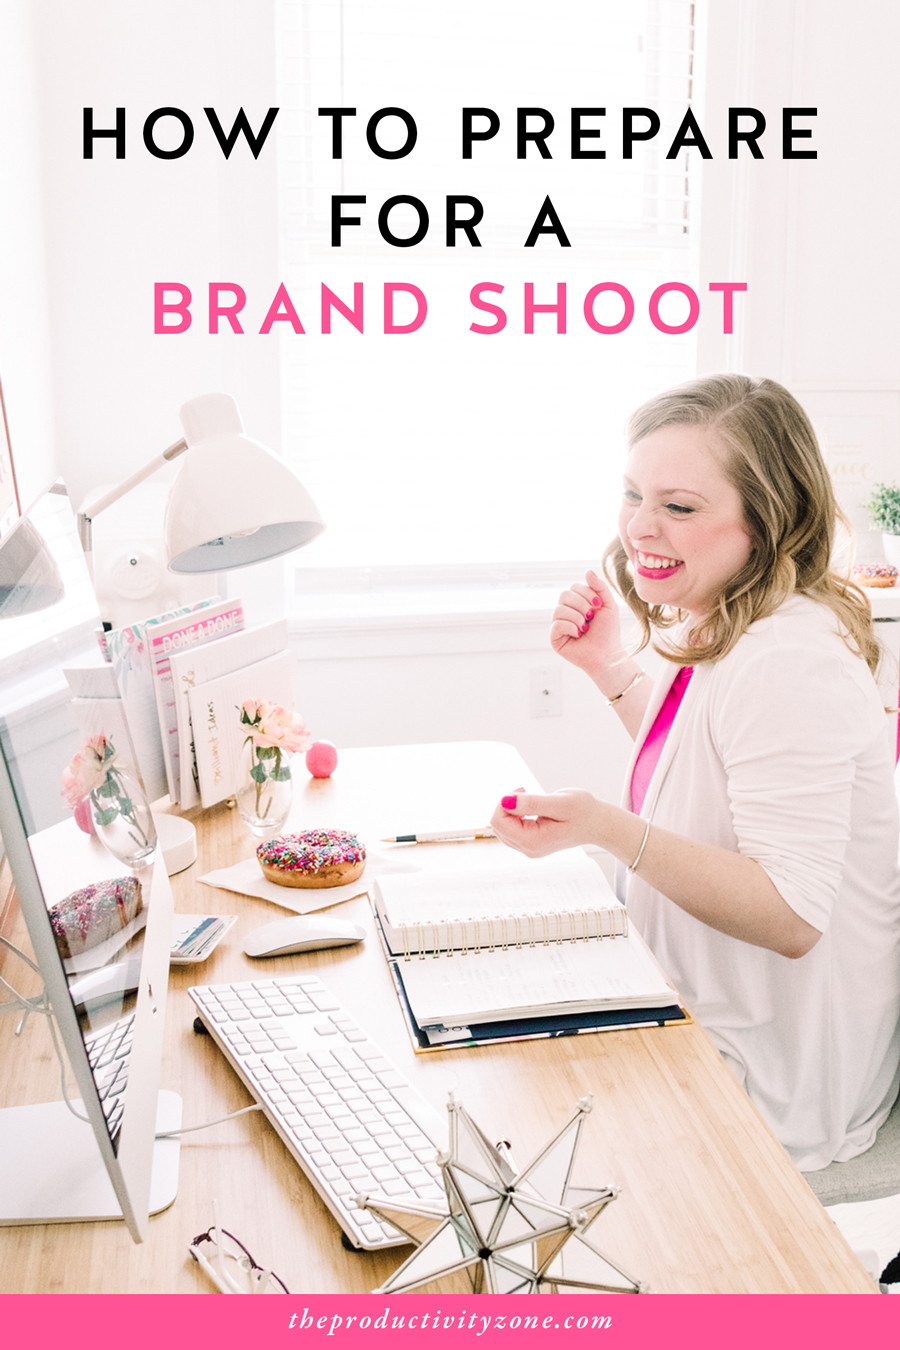 Want to knock your brand shoot out of the ballpark? Find out what a brand photographer, makeup artist, and creative small business owner recommend you do for your first or next brand shoot on The Productivity Zone!!